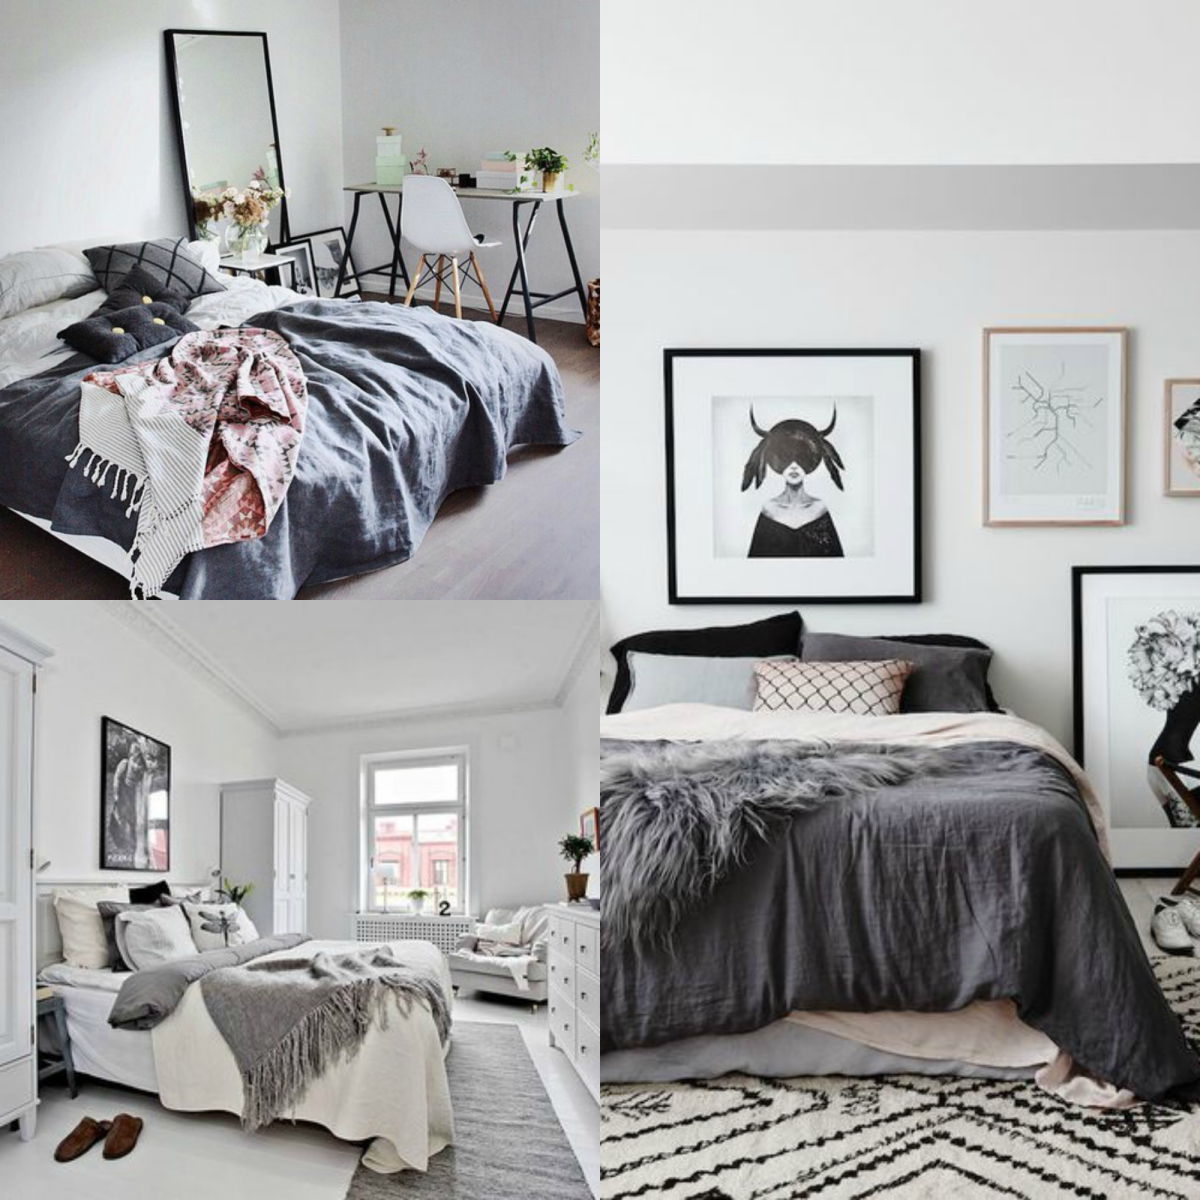 tumblr inspiration zimmer ihr traumhaus ideen. Black Bedroom Furniture Sets. Home Design Ideas